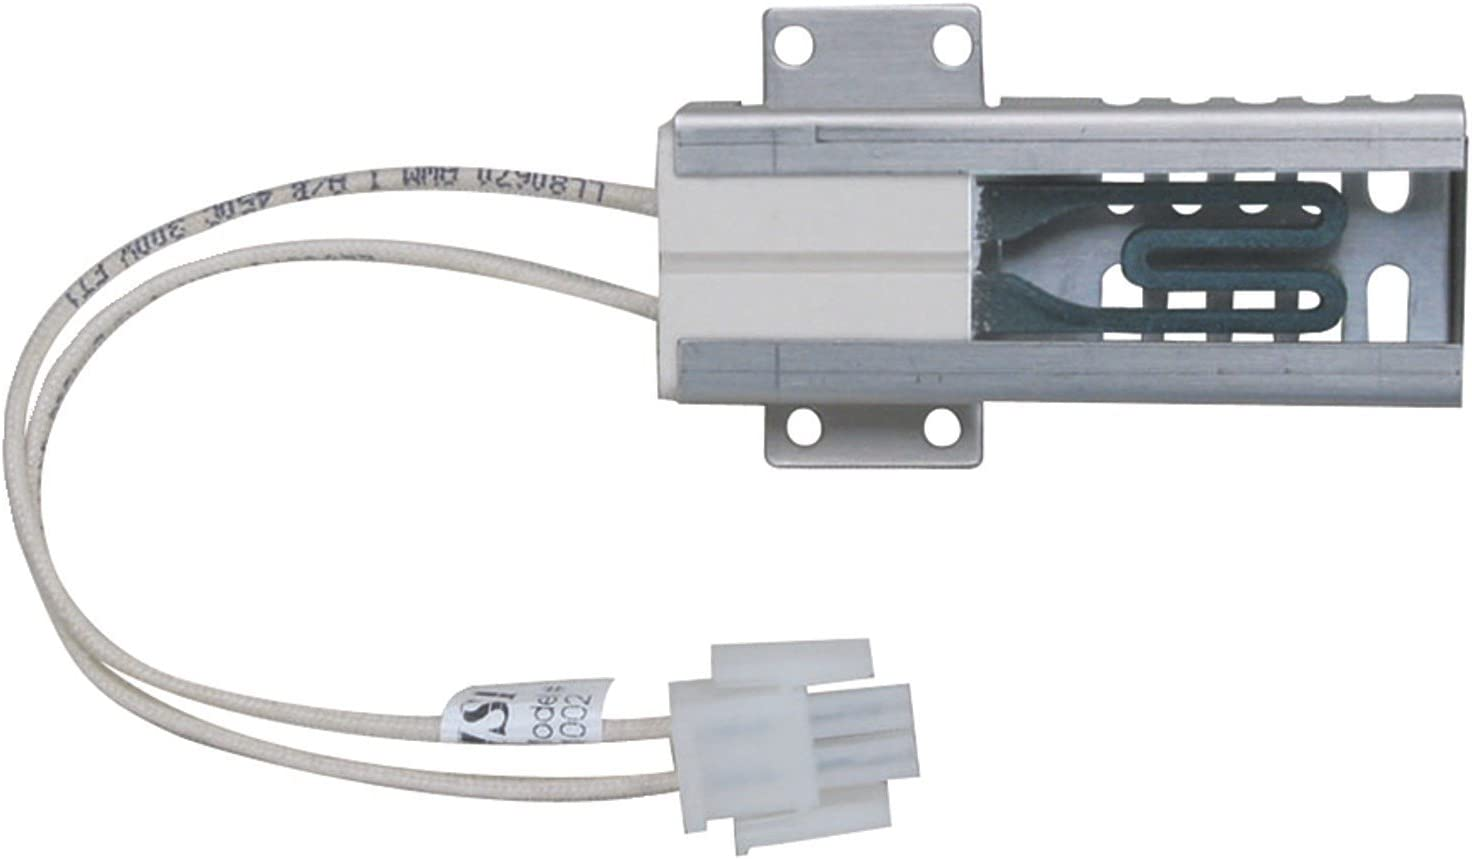 Compatible Oven Igniter for Kenmore / Sears 3627536192, General Electric JGBS21HED2WW, General Electric PGB918SEM4SS, Kenmore / Sears 36271761890 Gas Range